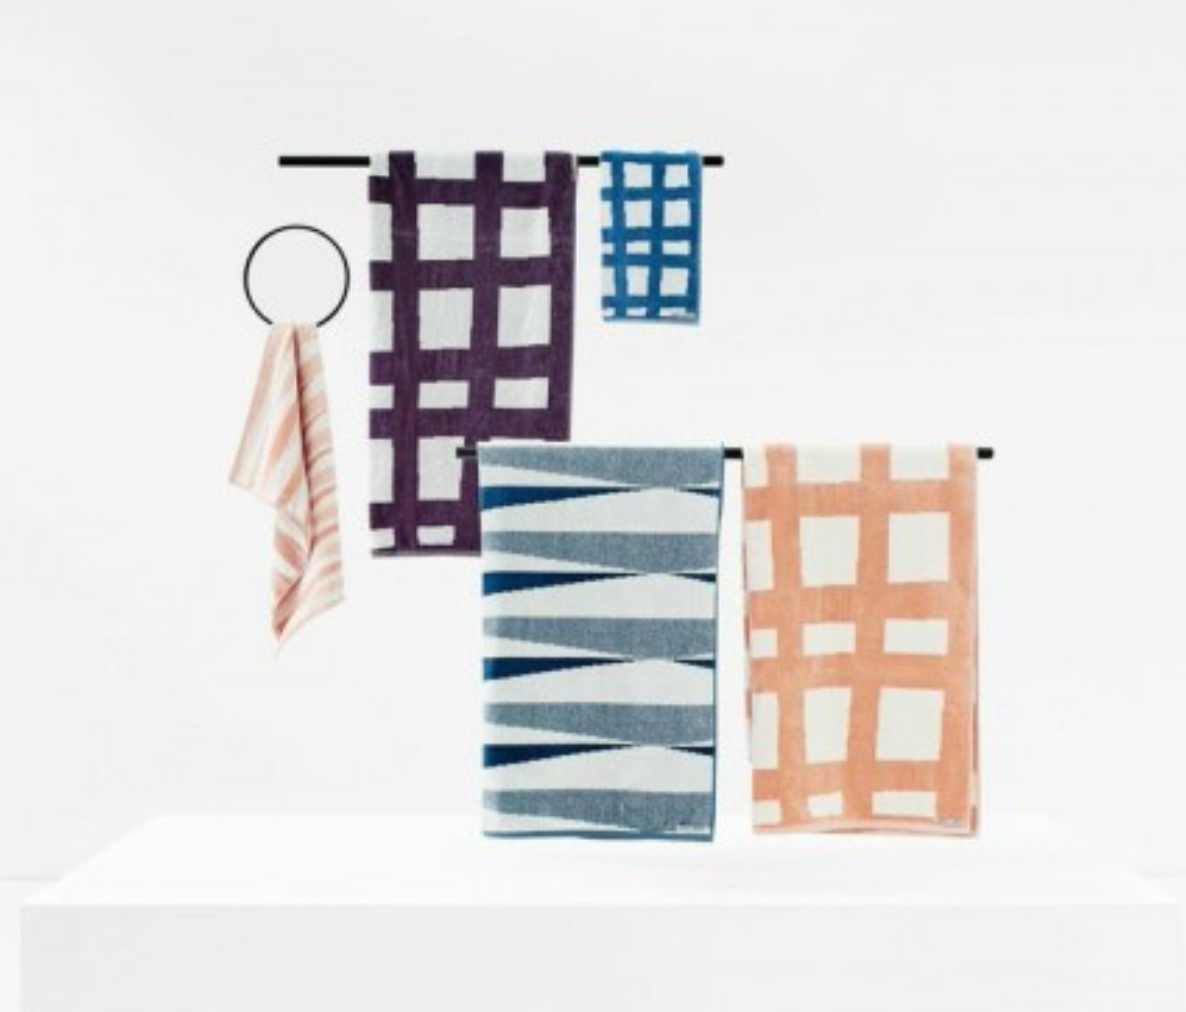 The Indie Buoy and Sea Tangle towels by Kate & Kate in 100% cotton.